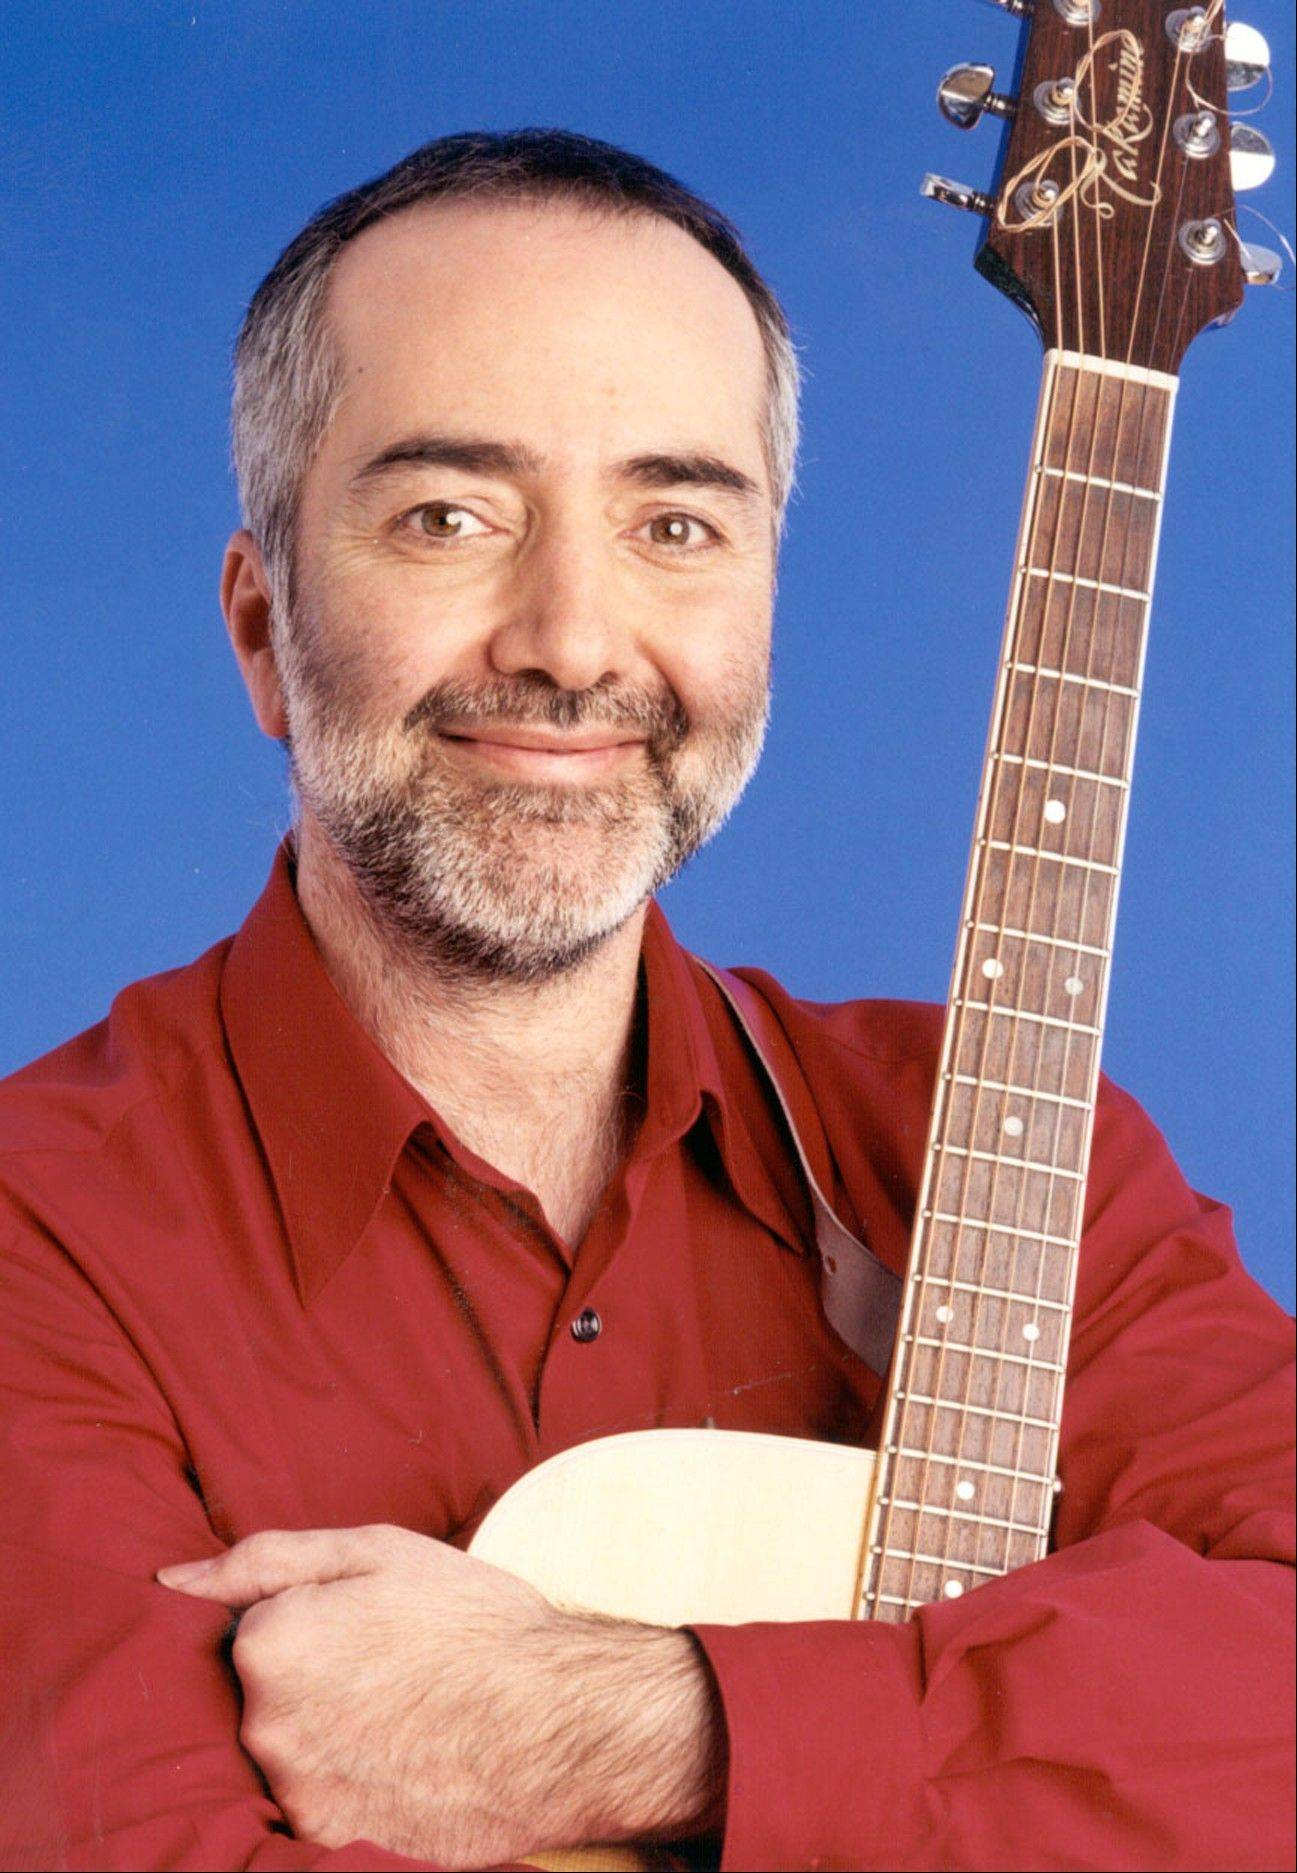 Children's entertainer Raffi will perform in concert at the Paramount Theatre in Aurora Sunday, May 19.